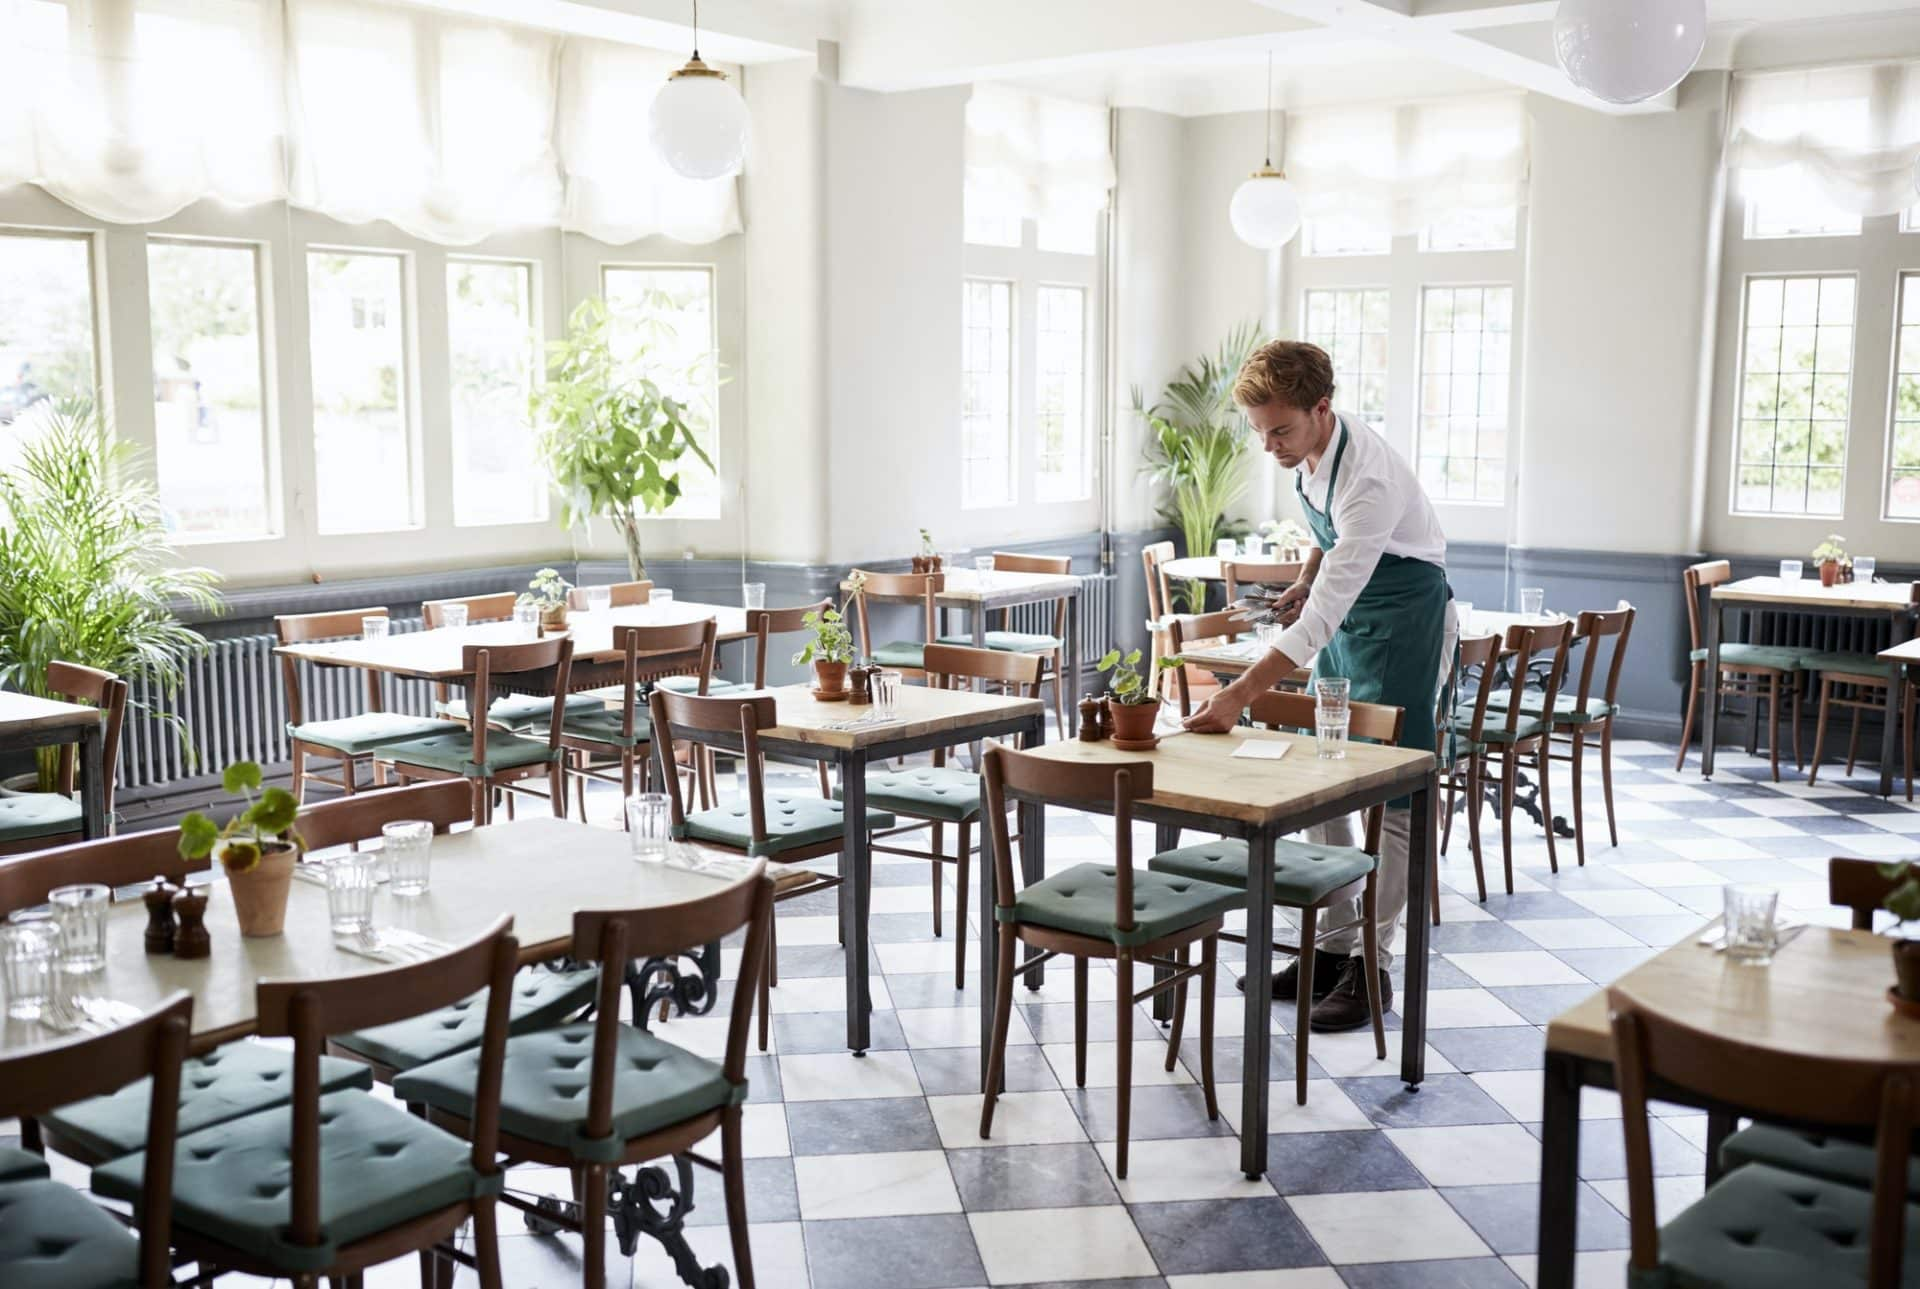 Waiter Laying Tables In Empty Restaurant